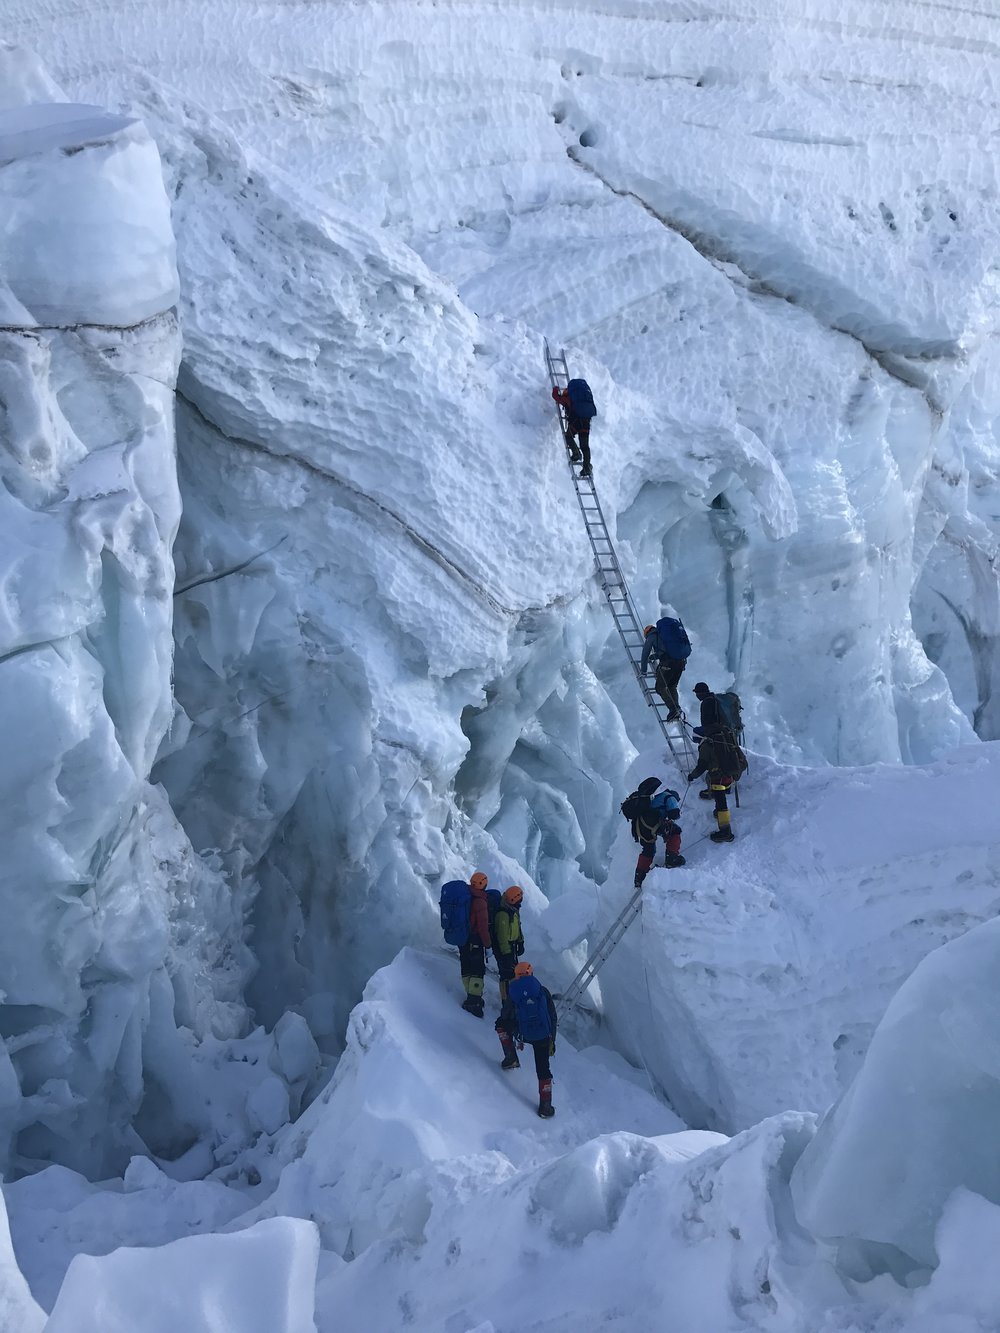 New obstacle in the Khumbu Icefall